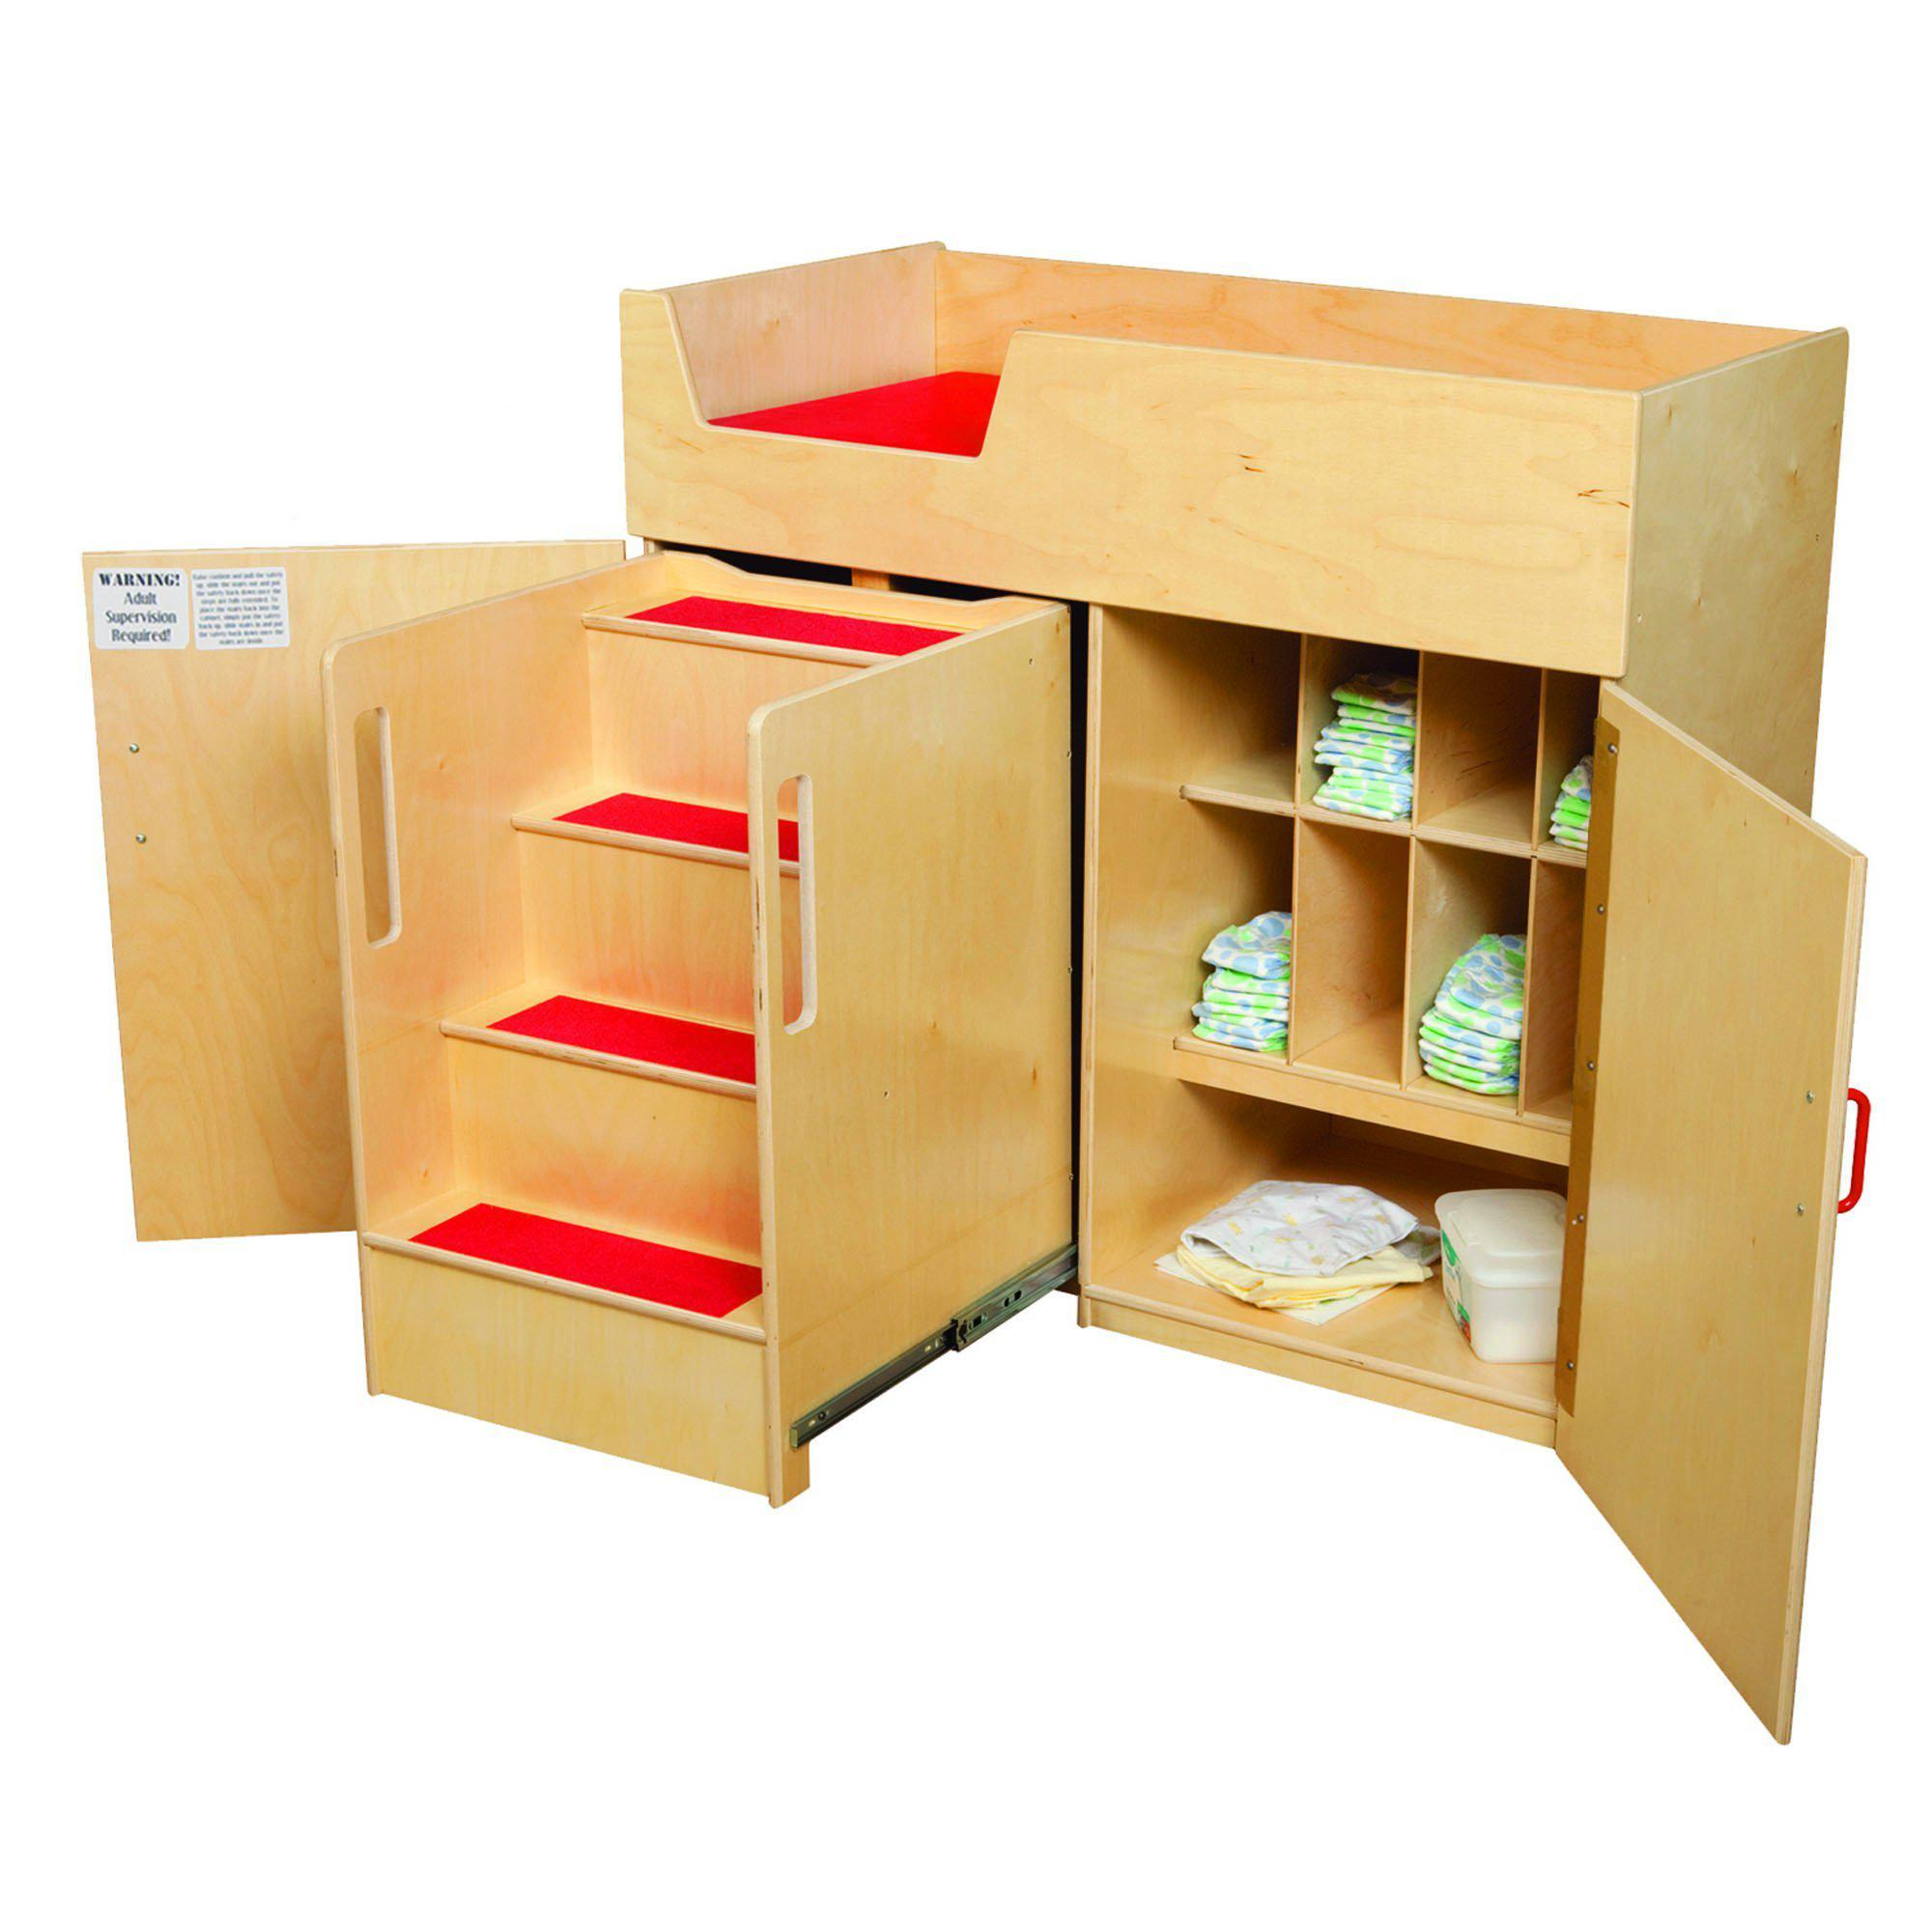 Deluxe Infant Care Center with Stairs with Red Treads and Cushion